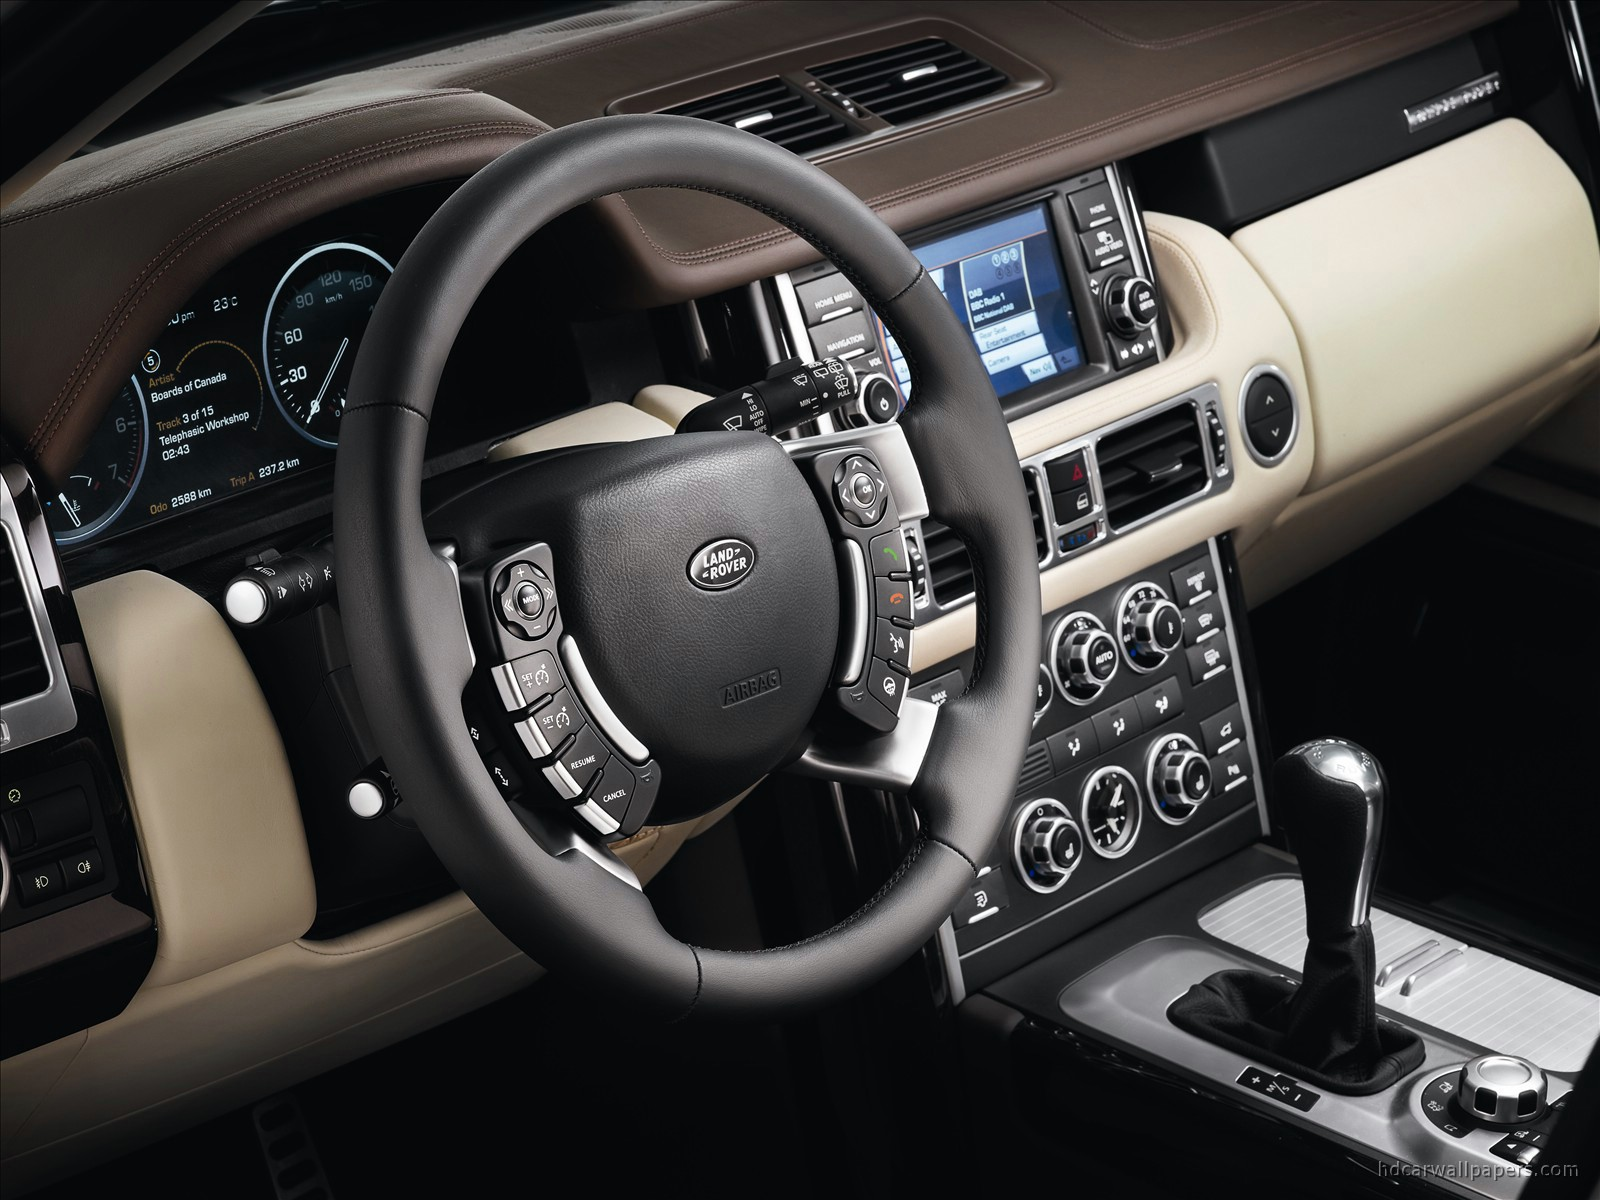 2010 land rover range rover interior wallpaper hd car wallpapers id 1106. Black Bedroom Furniture Sets. Home Design Ideas